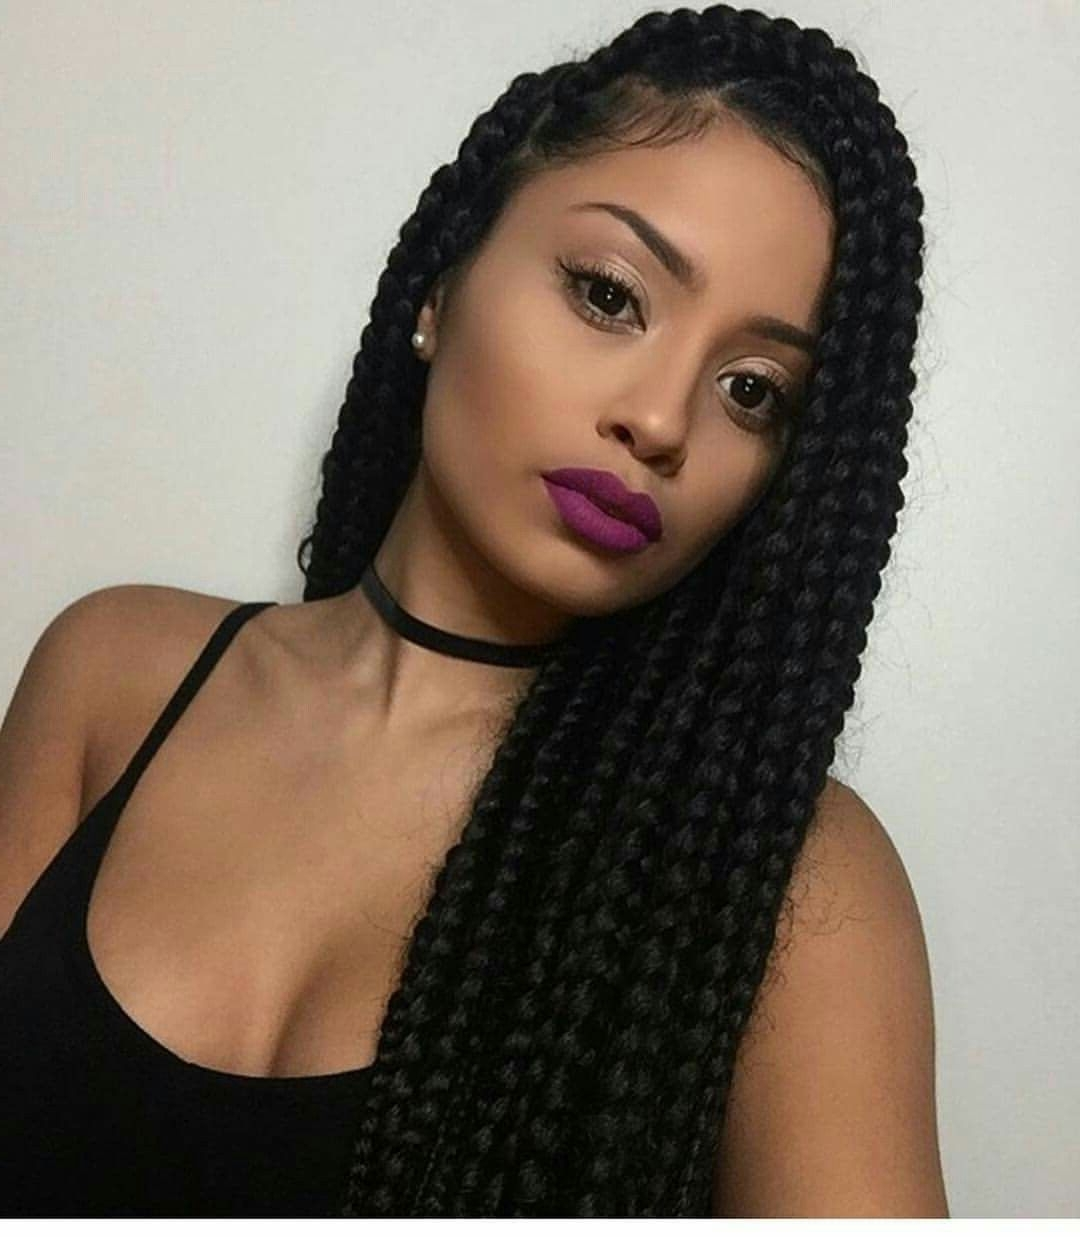 Current Twist From Box Braids Hairstyles With Box Braids Gottalovedesss Braids Locs Twist Best Of Braided And (View 3 of 15)